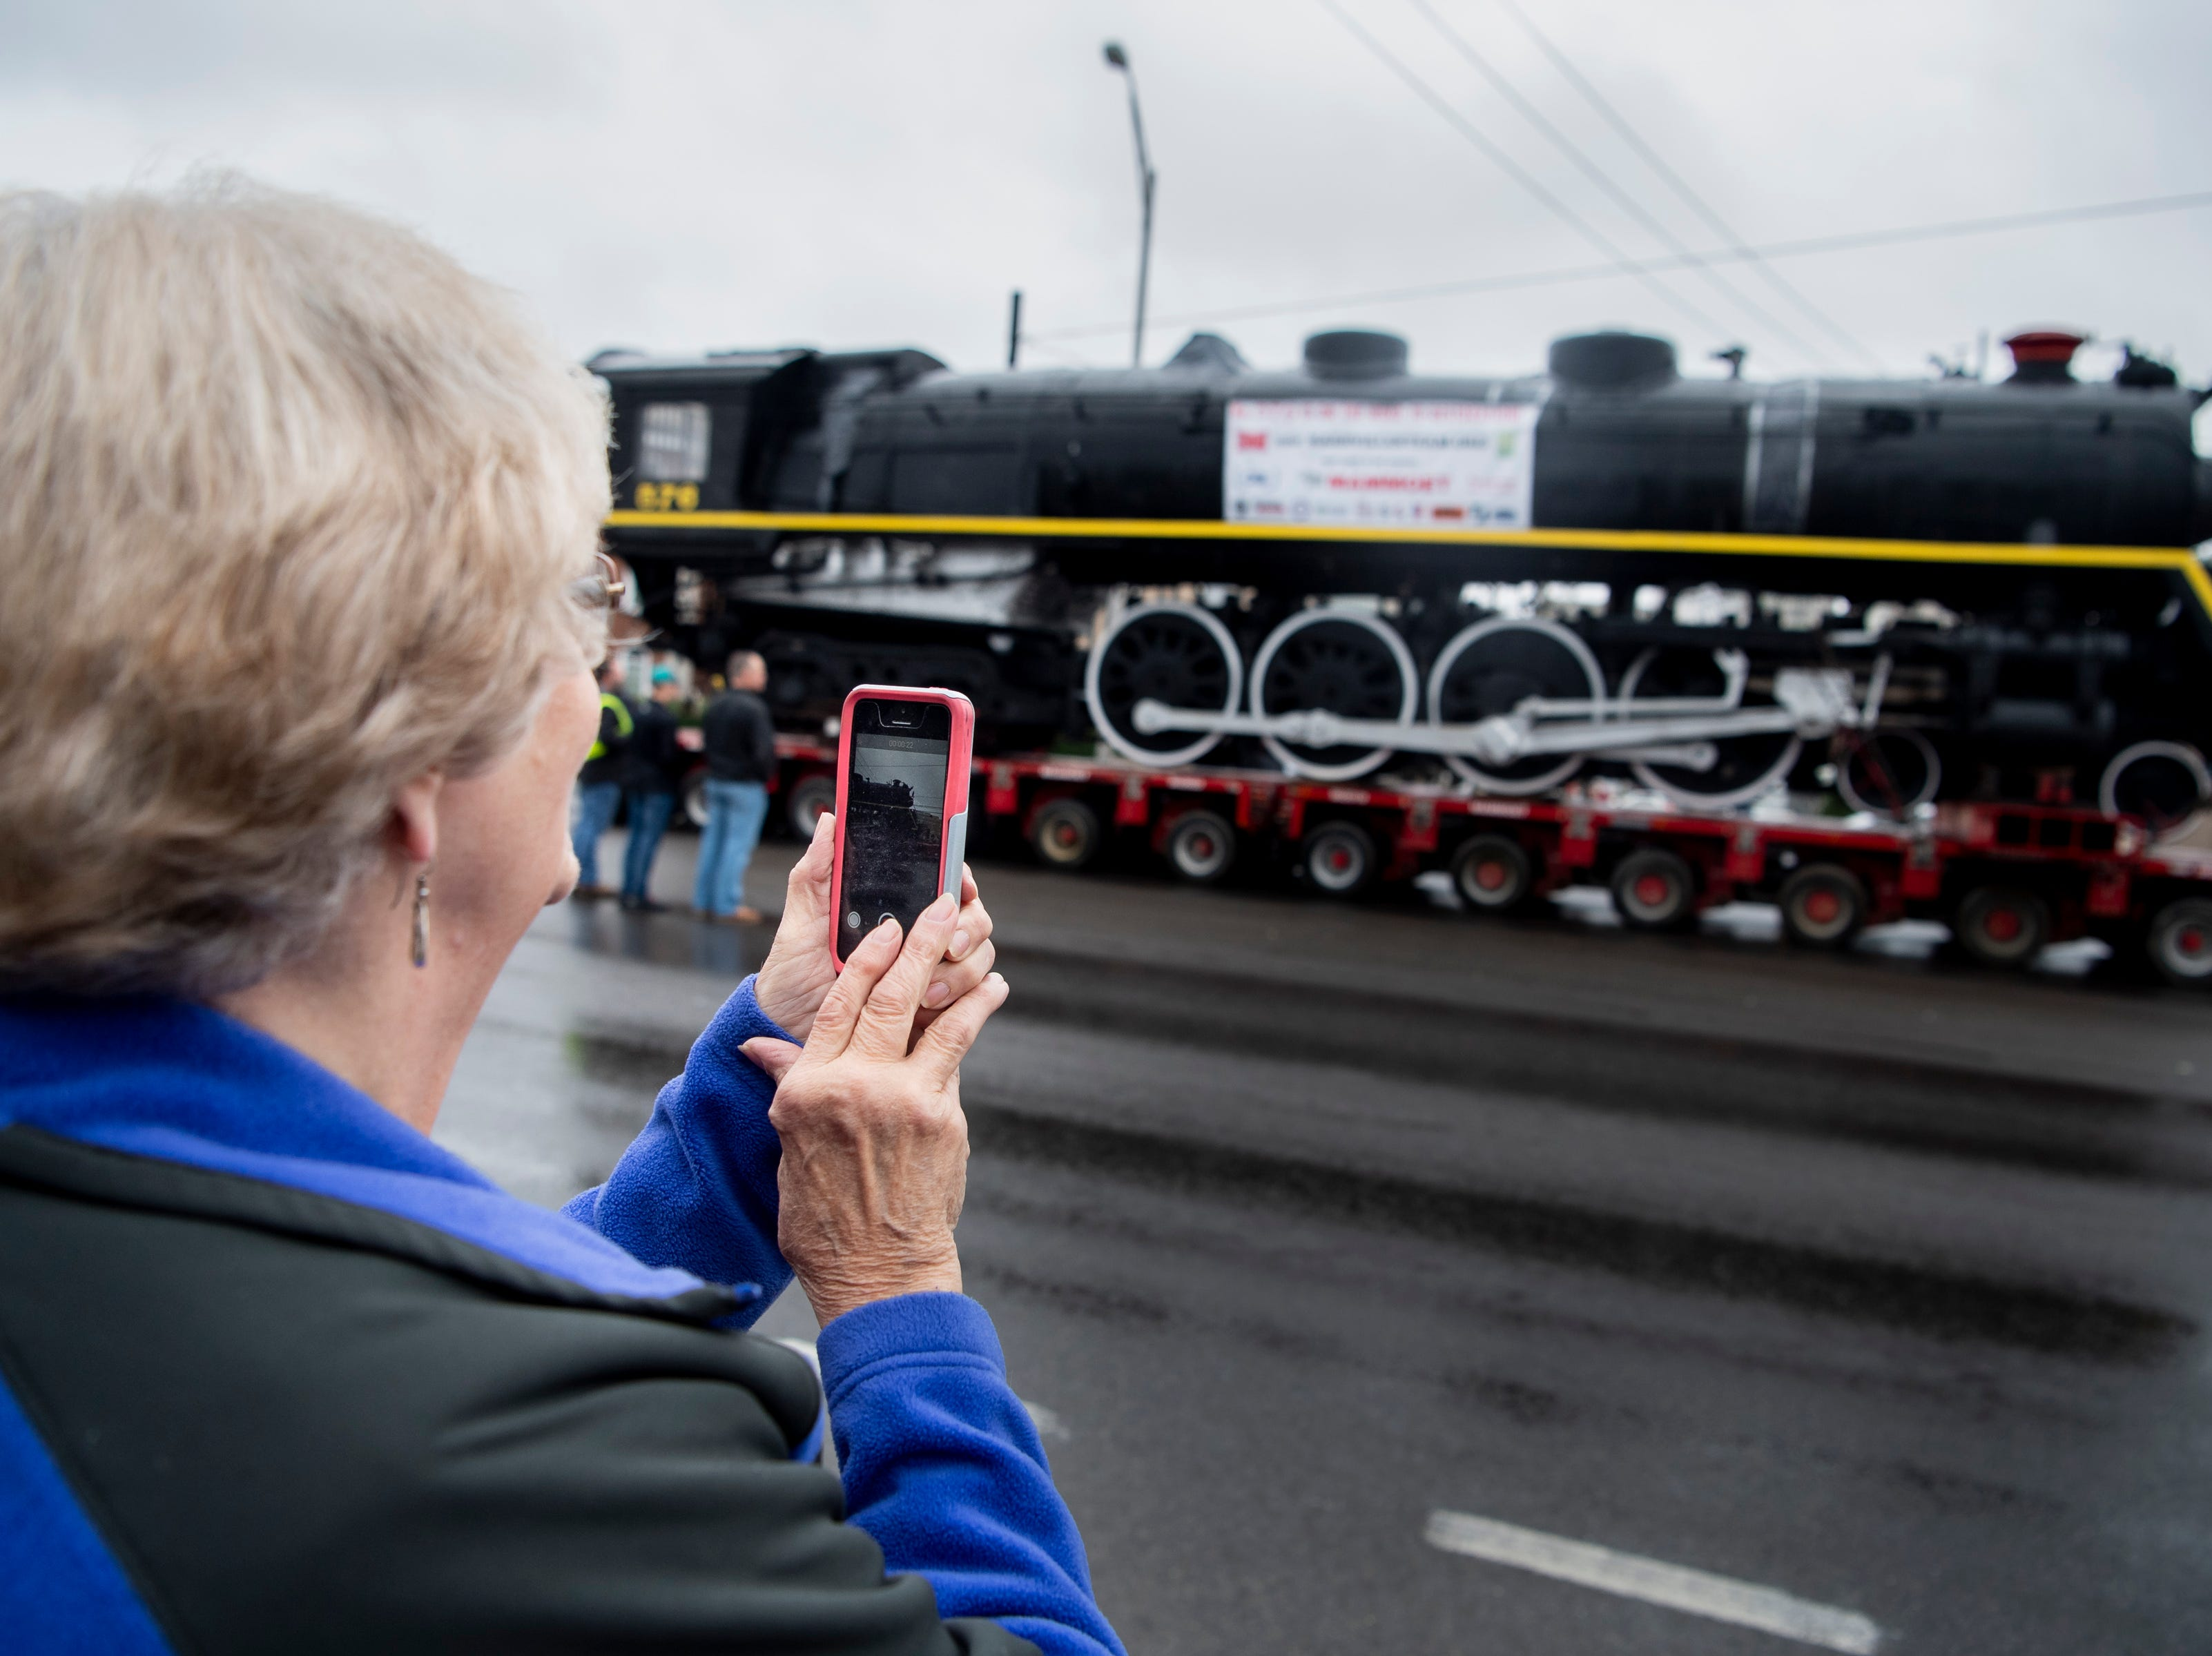 Barbara Cox, of Nashville, takes a picture as former Nashville, Chattanooga & St. Louis Railway steam locomotive No. 576 is moved down Charlotte Ave. in Nashville, Tenn., Sunday, Jan. 13, 2019. The train, which will be restored to working condition over approximately four years, has been on display in Centennial Park since 1953.